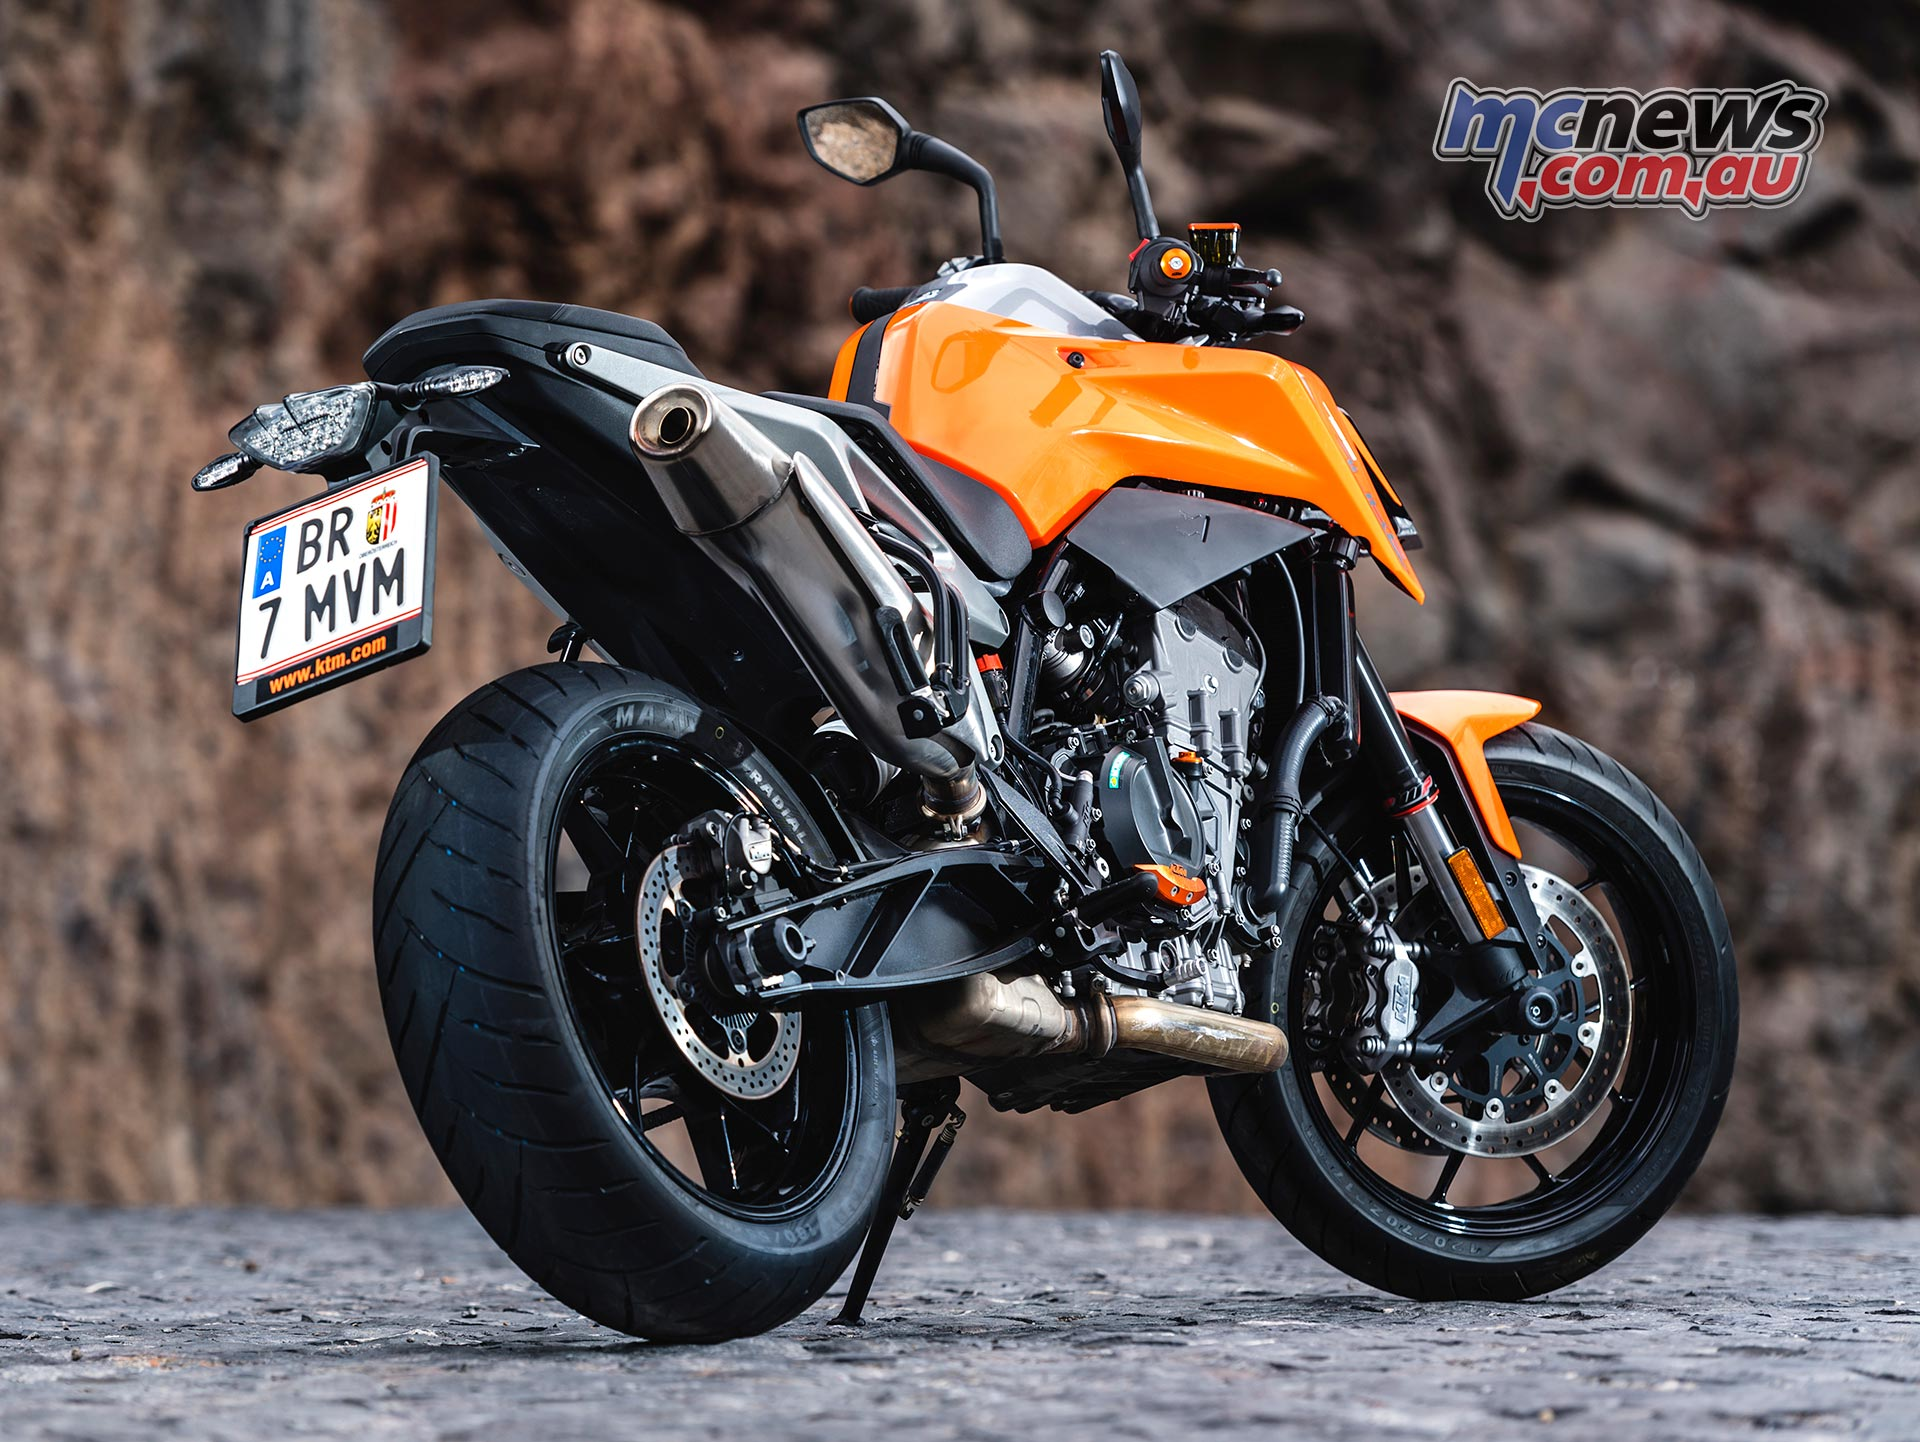 KTM 790 Duke Motorcycle Review | Motorcycle Tests | MCNews.com.au